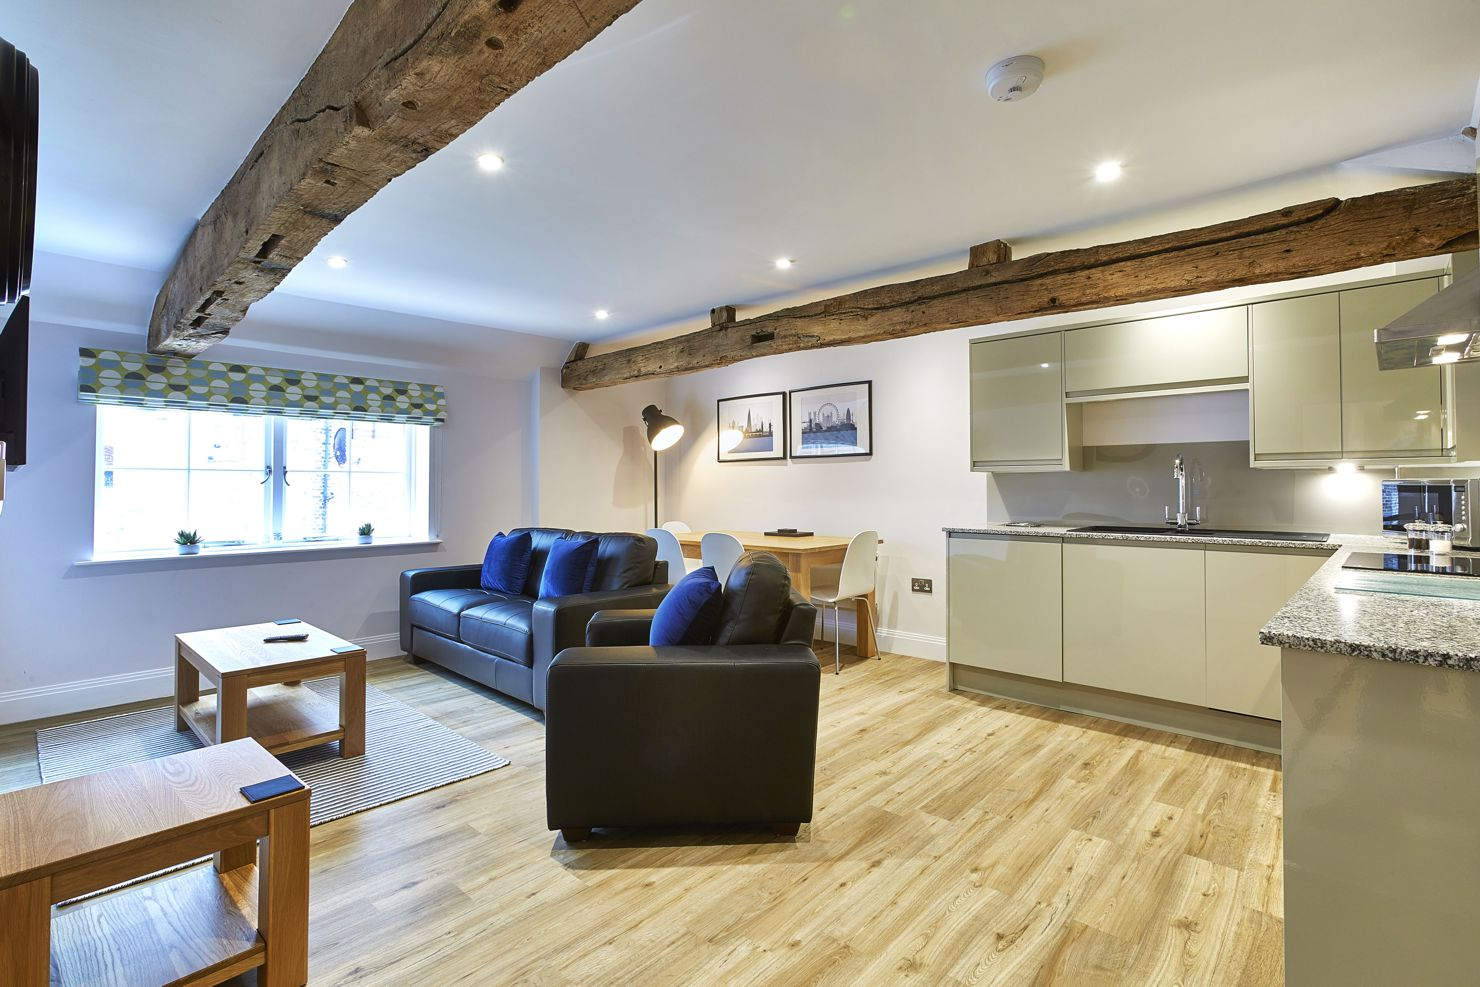 Amazing Self-Catering Accommodation Newbury! Centrally located Serviced Apartments Newbury and corporate accommodation UK. Competitive Rates · No Booking Fees · Free Wi-Fi · Fully Furnished · Fully equipped kitchen · Weekly cleaning included. Call Urban Stay now: +44 (0) 208 691 3920